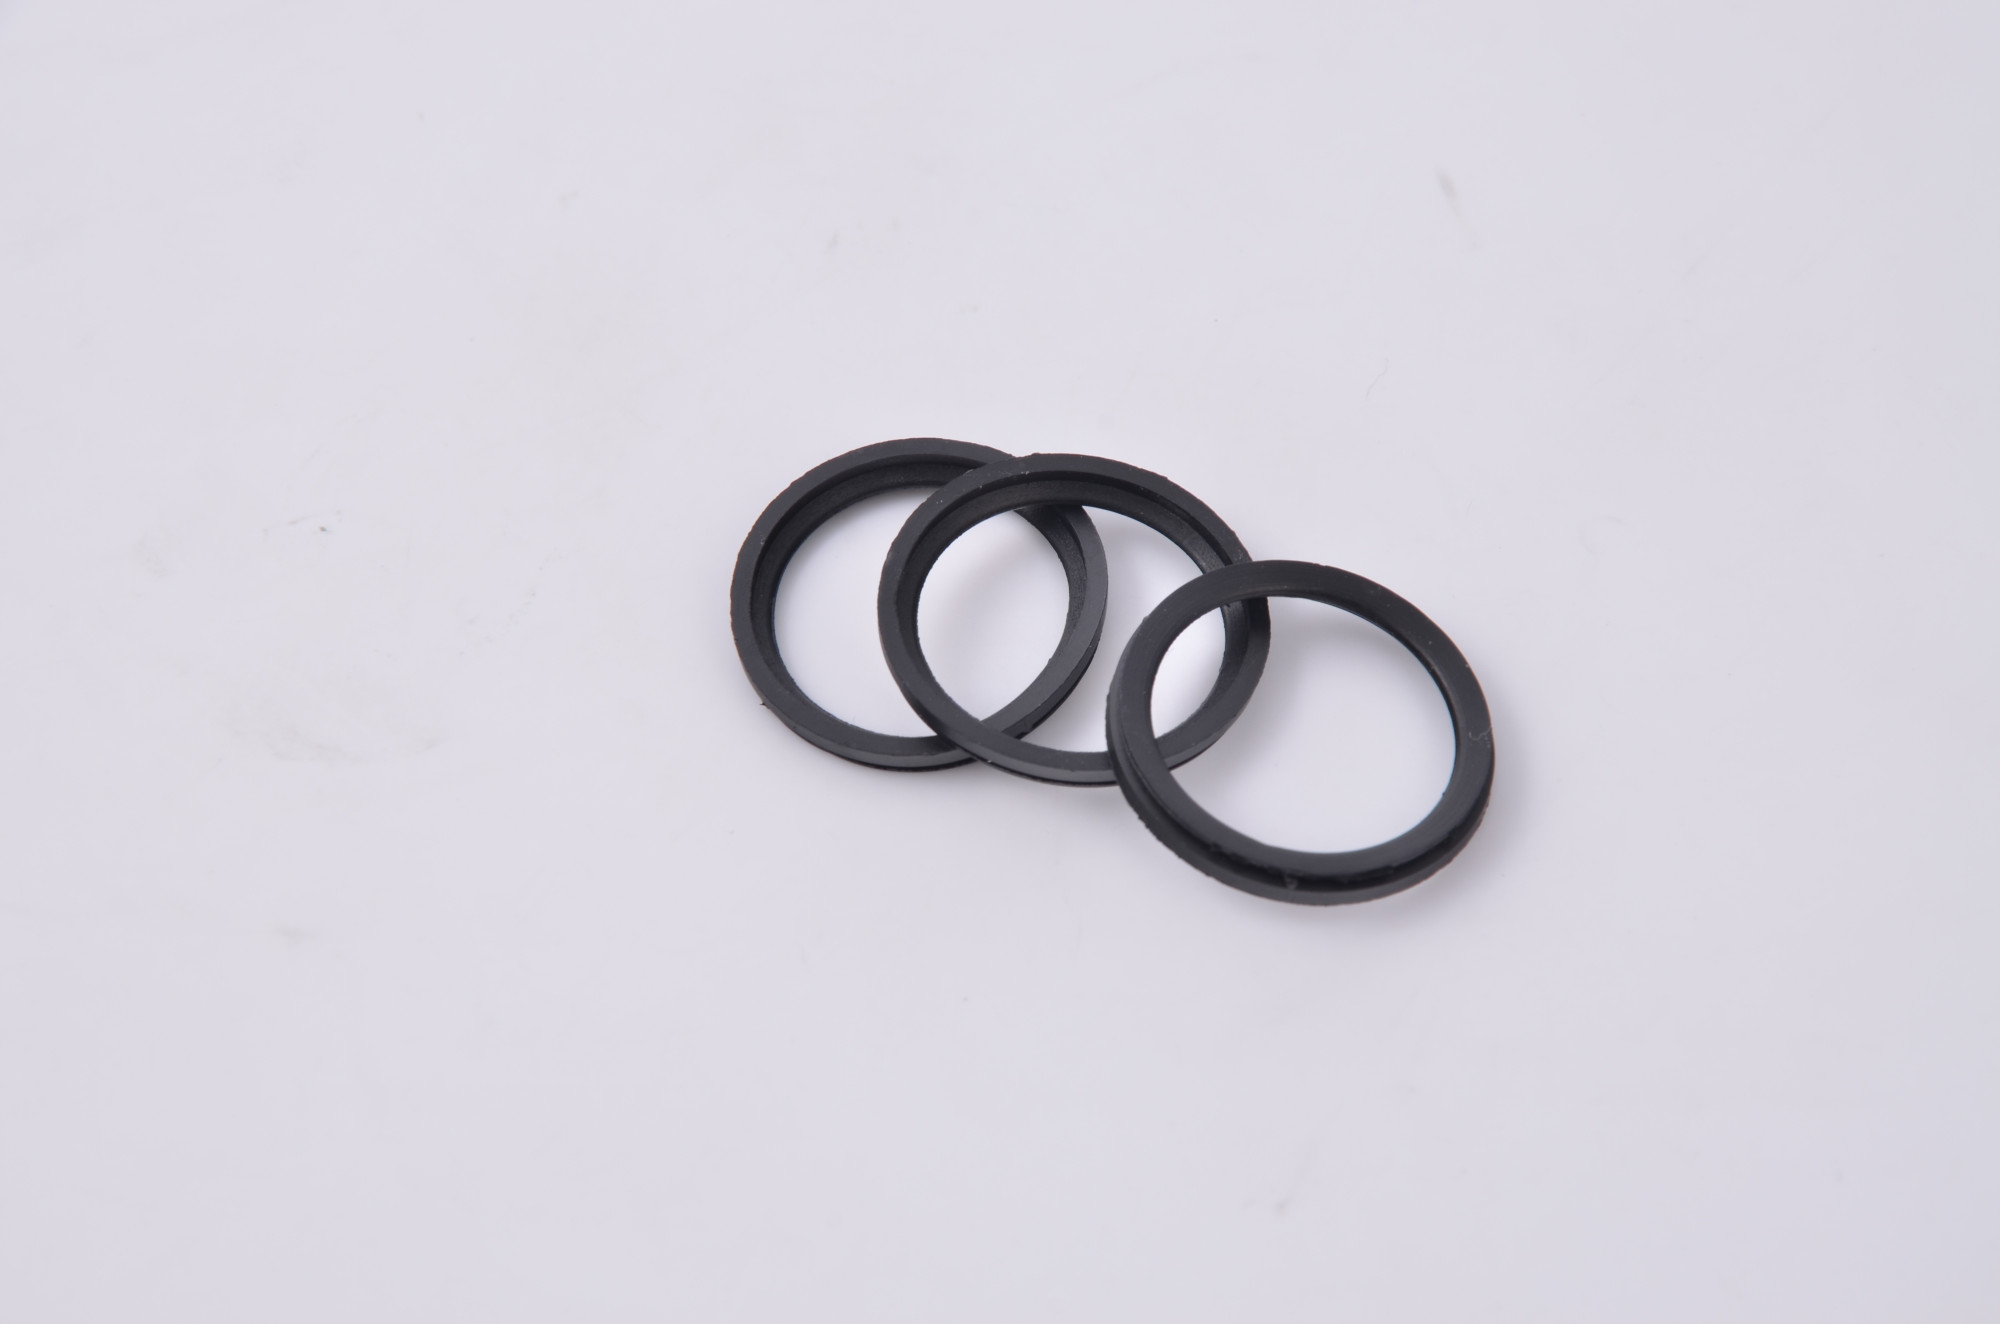 Water tank seal ring Manufacturers, Water tank seal ring Factory, Water tank seal ring